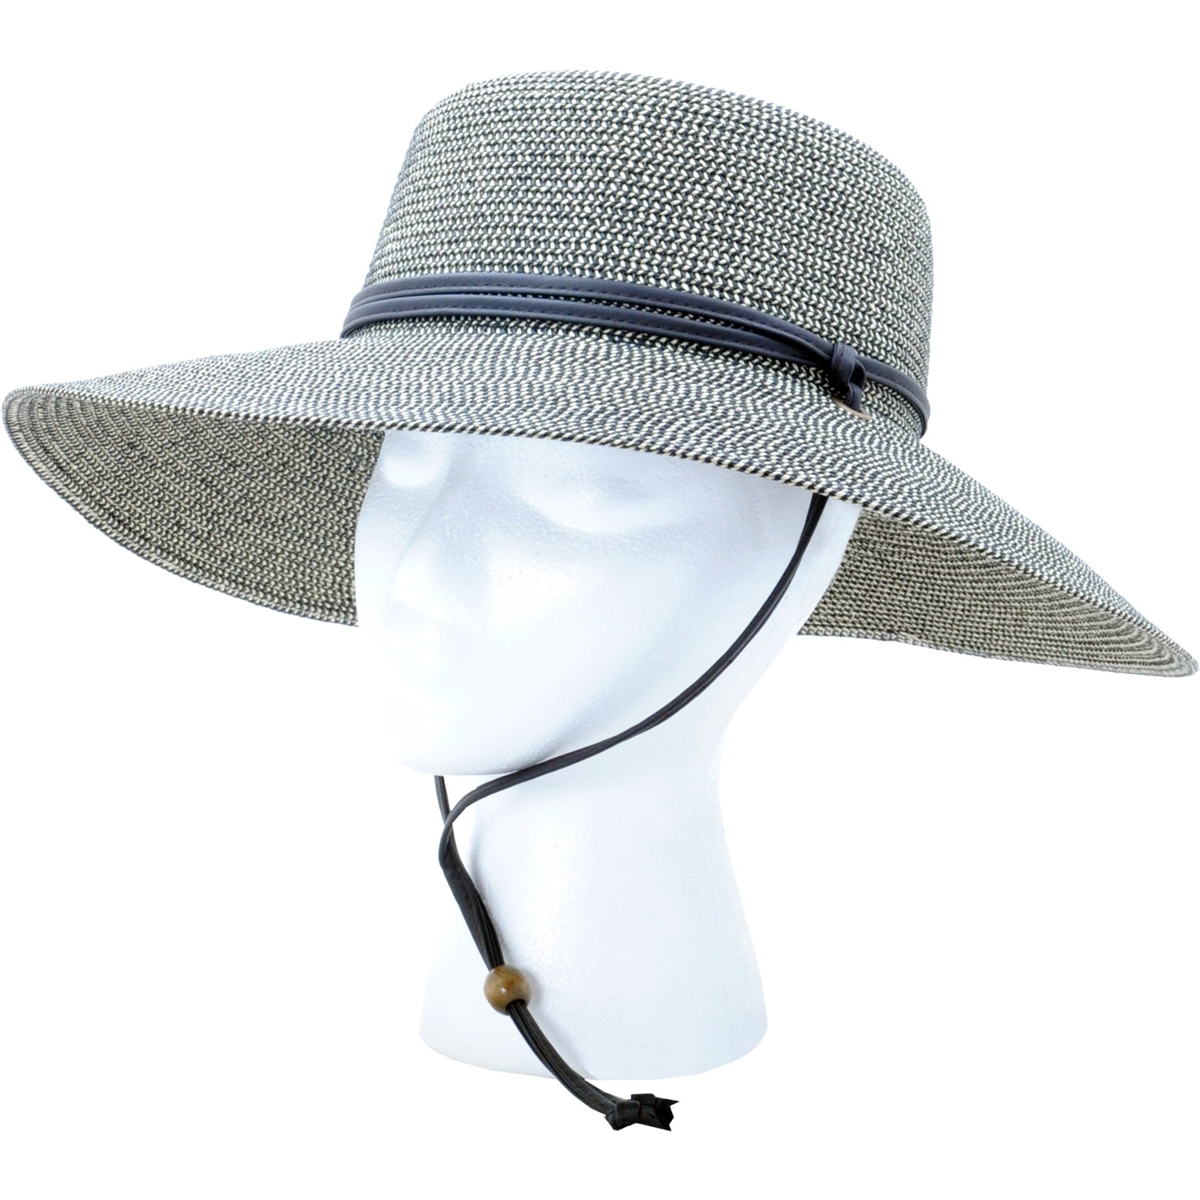 024ee757 Sloggers Women's Braided Sun Hat with Wind Lanyard UPF 50+ Maximum ...